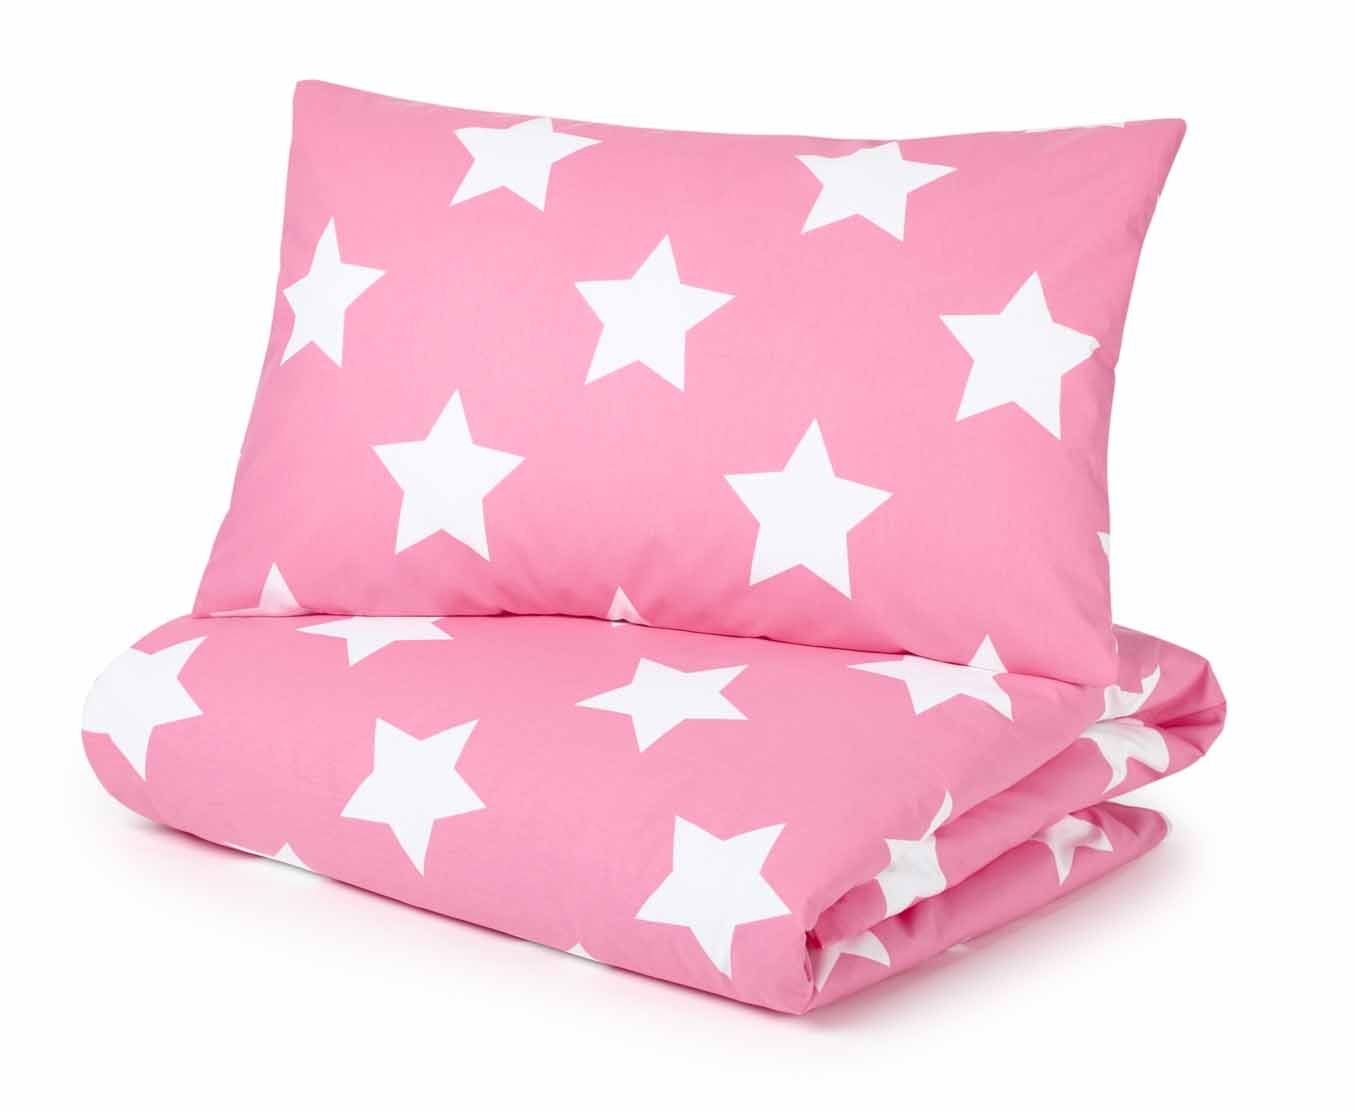 Cot Bed Duvet Cover and Pillowcase Set, Pink with White Stars Pixie and Jack